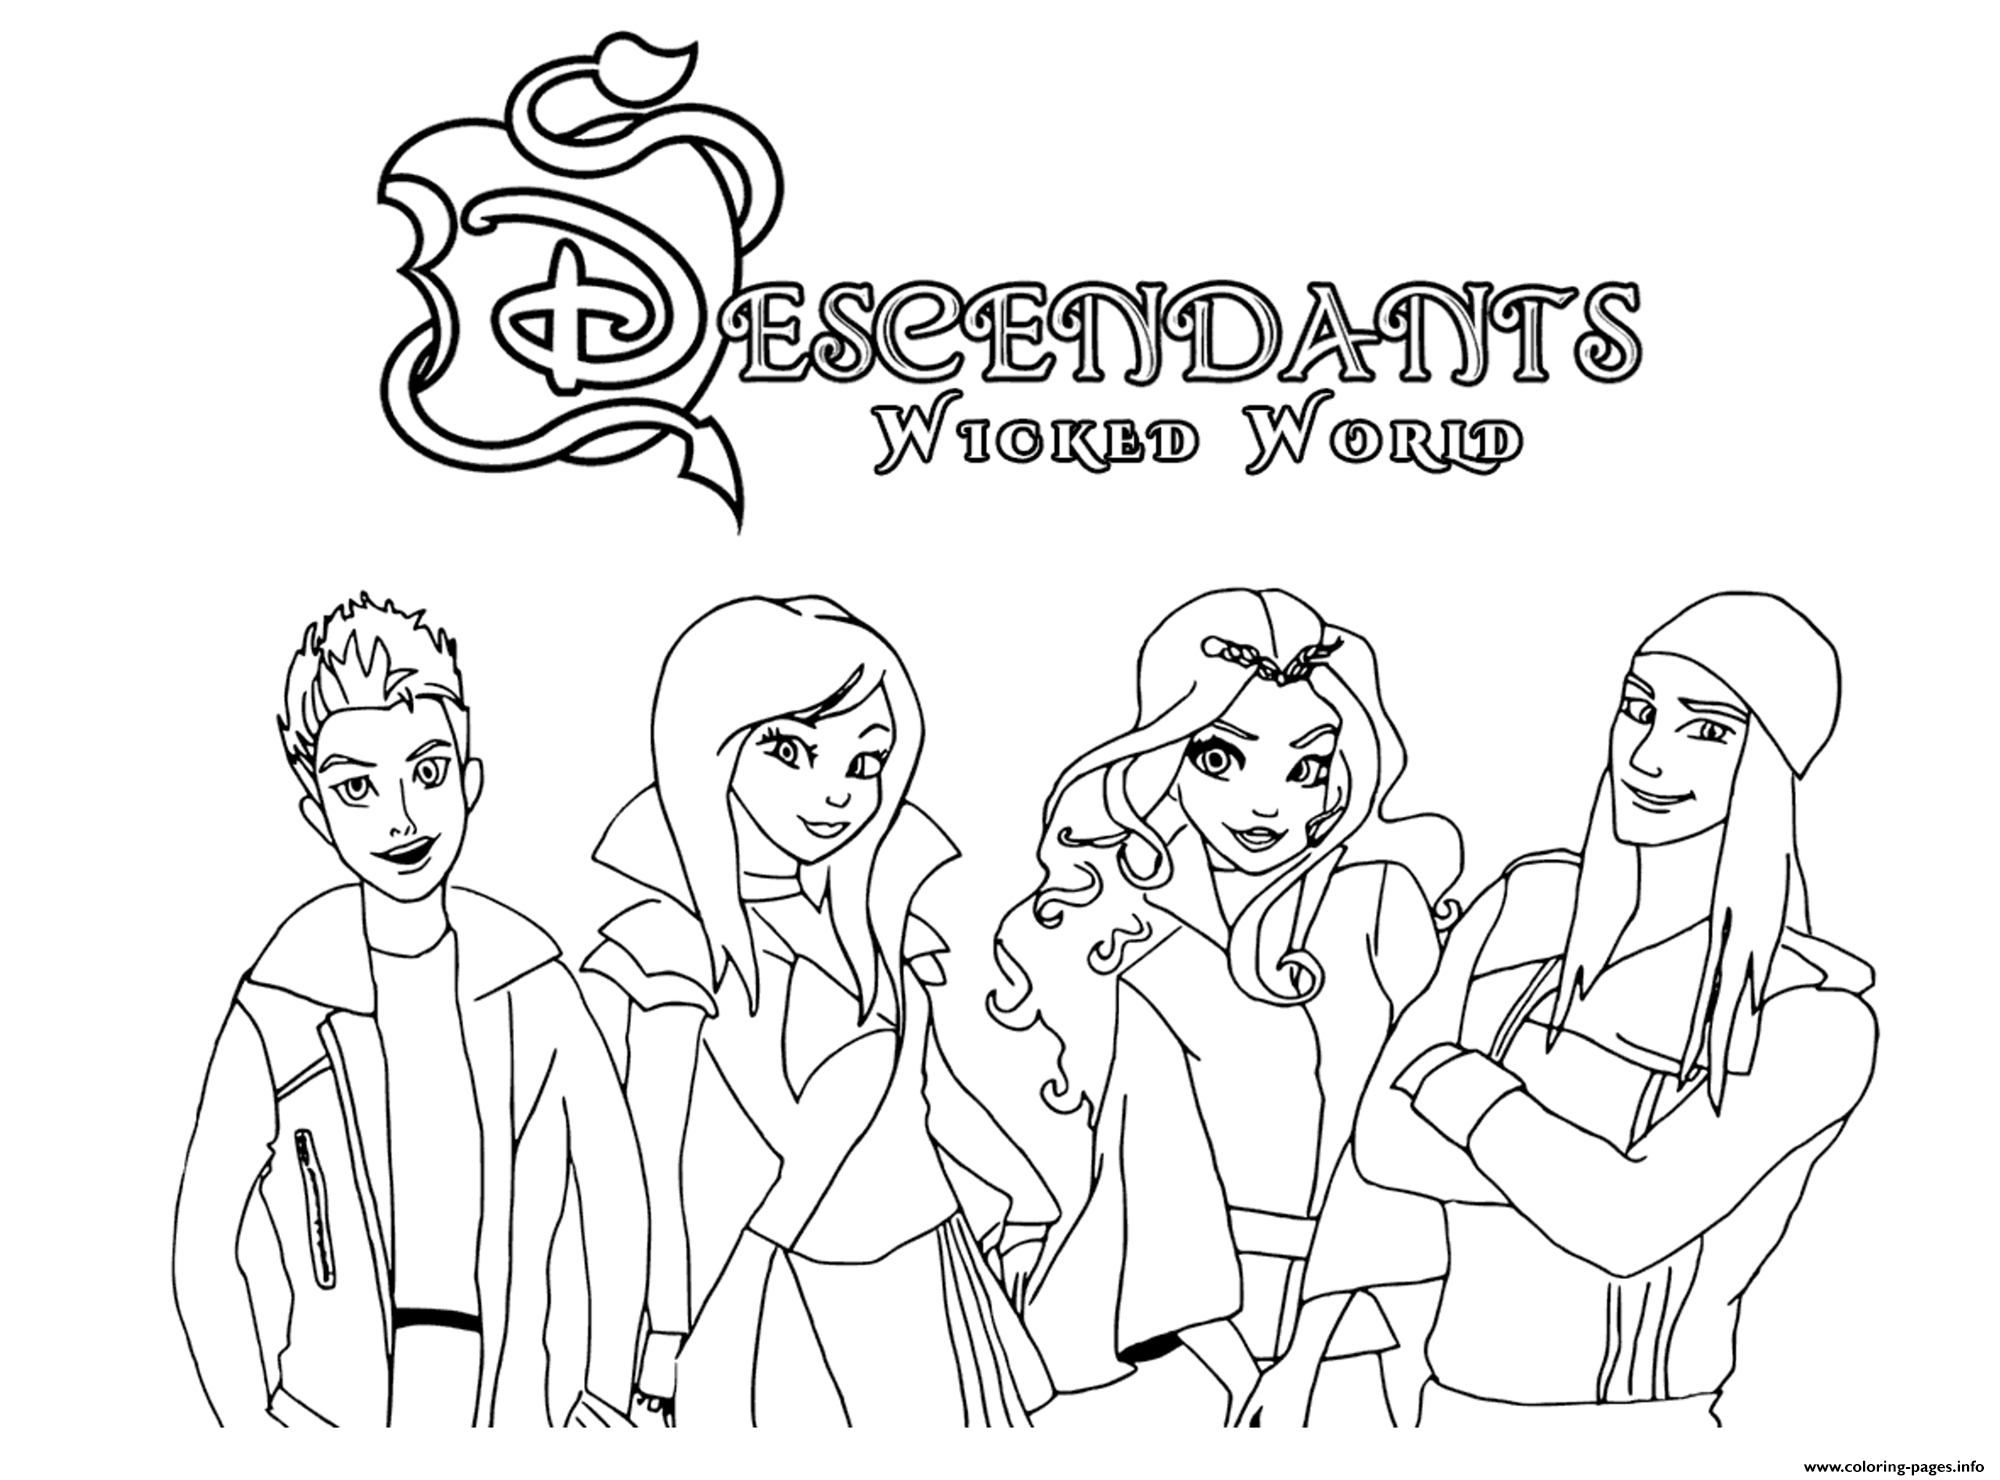 The Descendants Wicked World Coloring Pages Printable